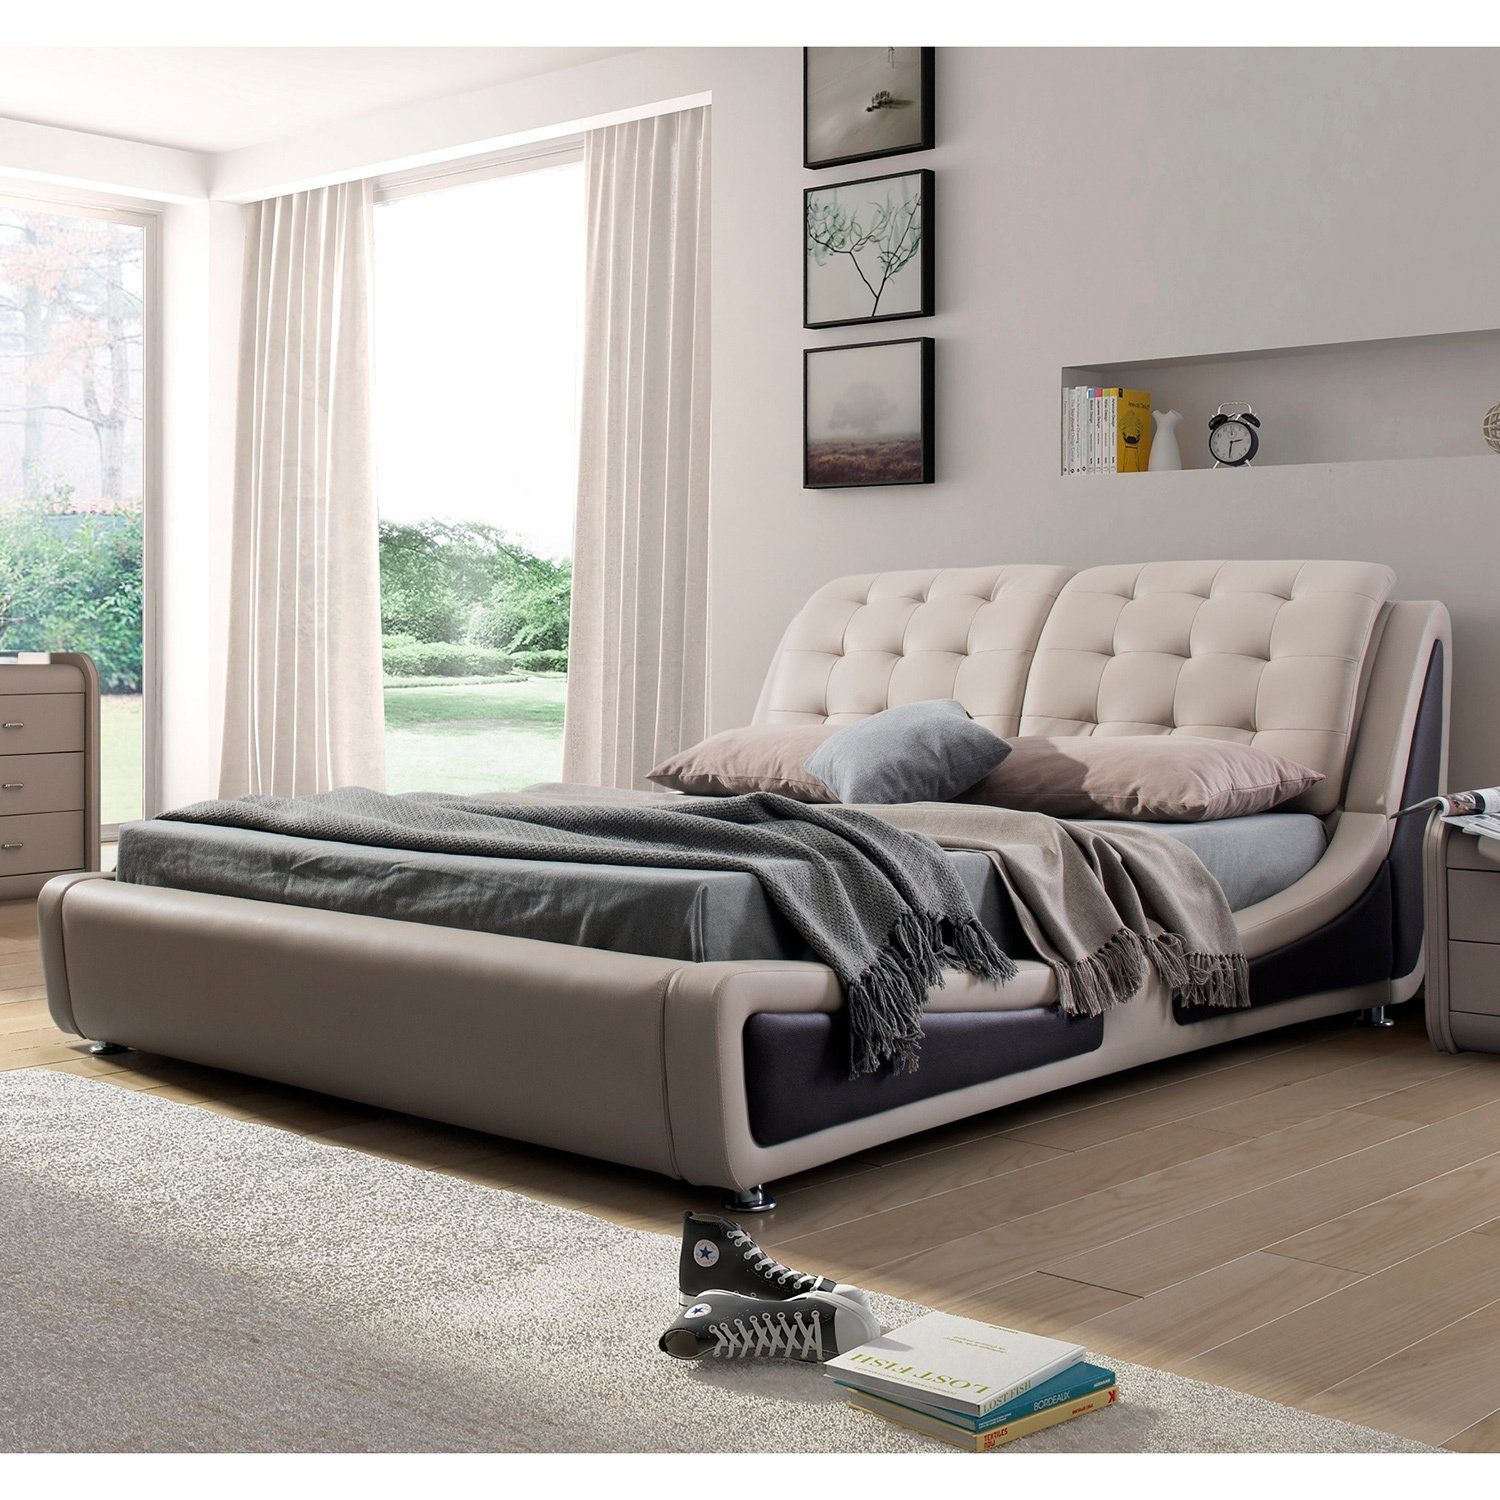 Contemporary Platform Bed, Queen Size, Brown